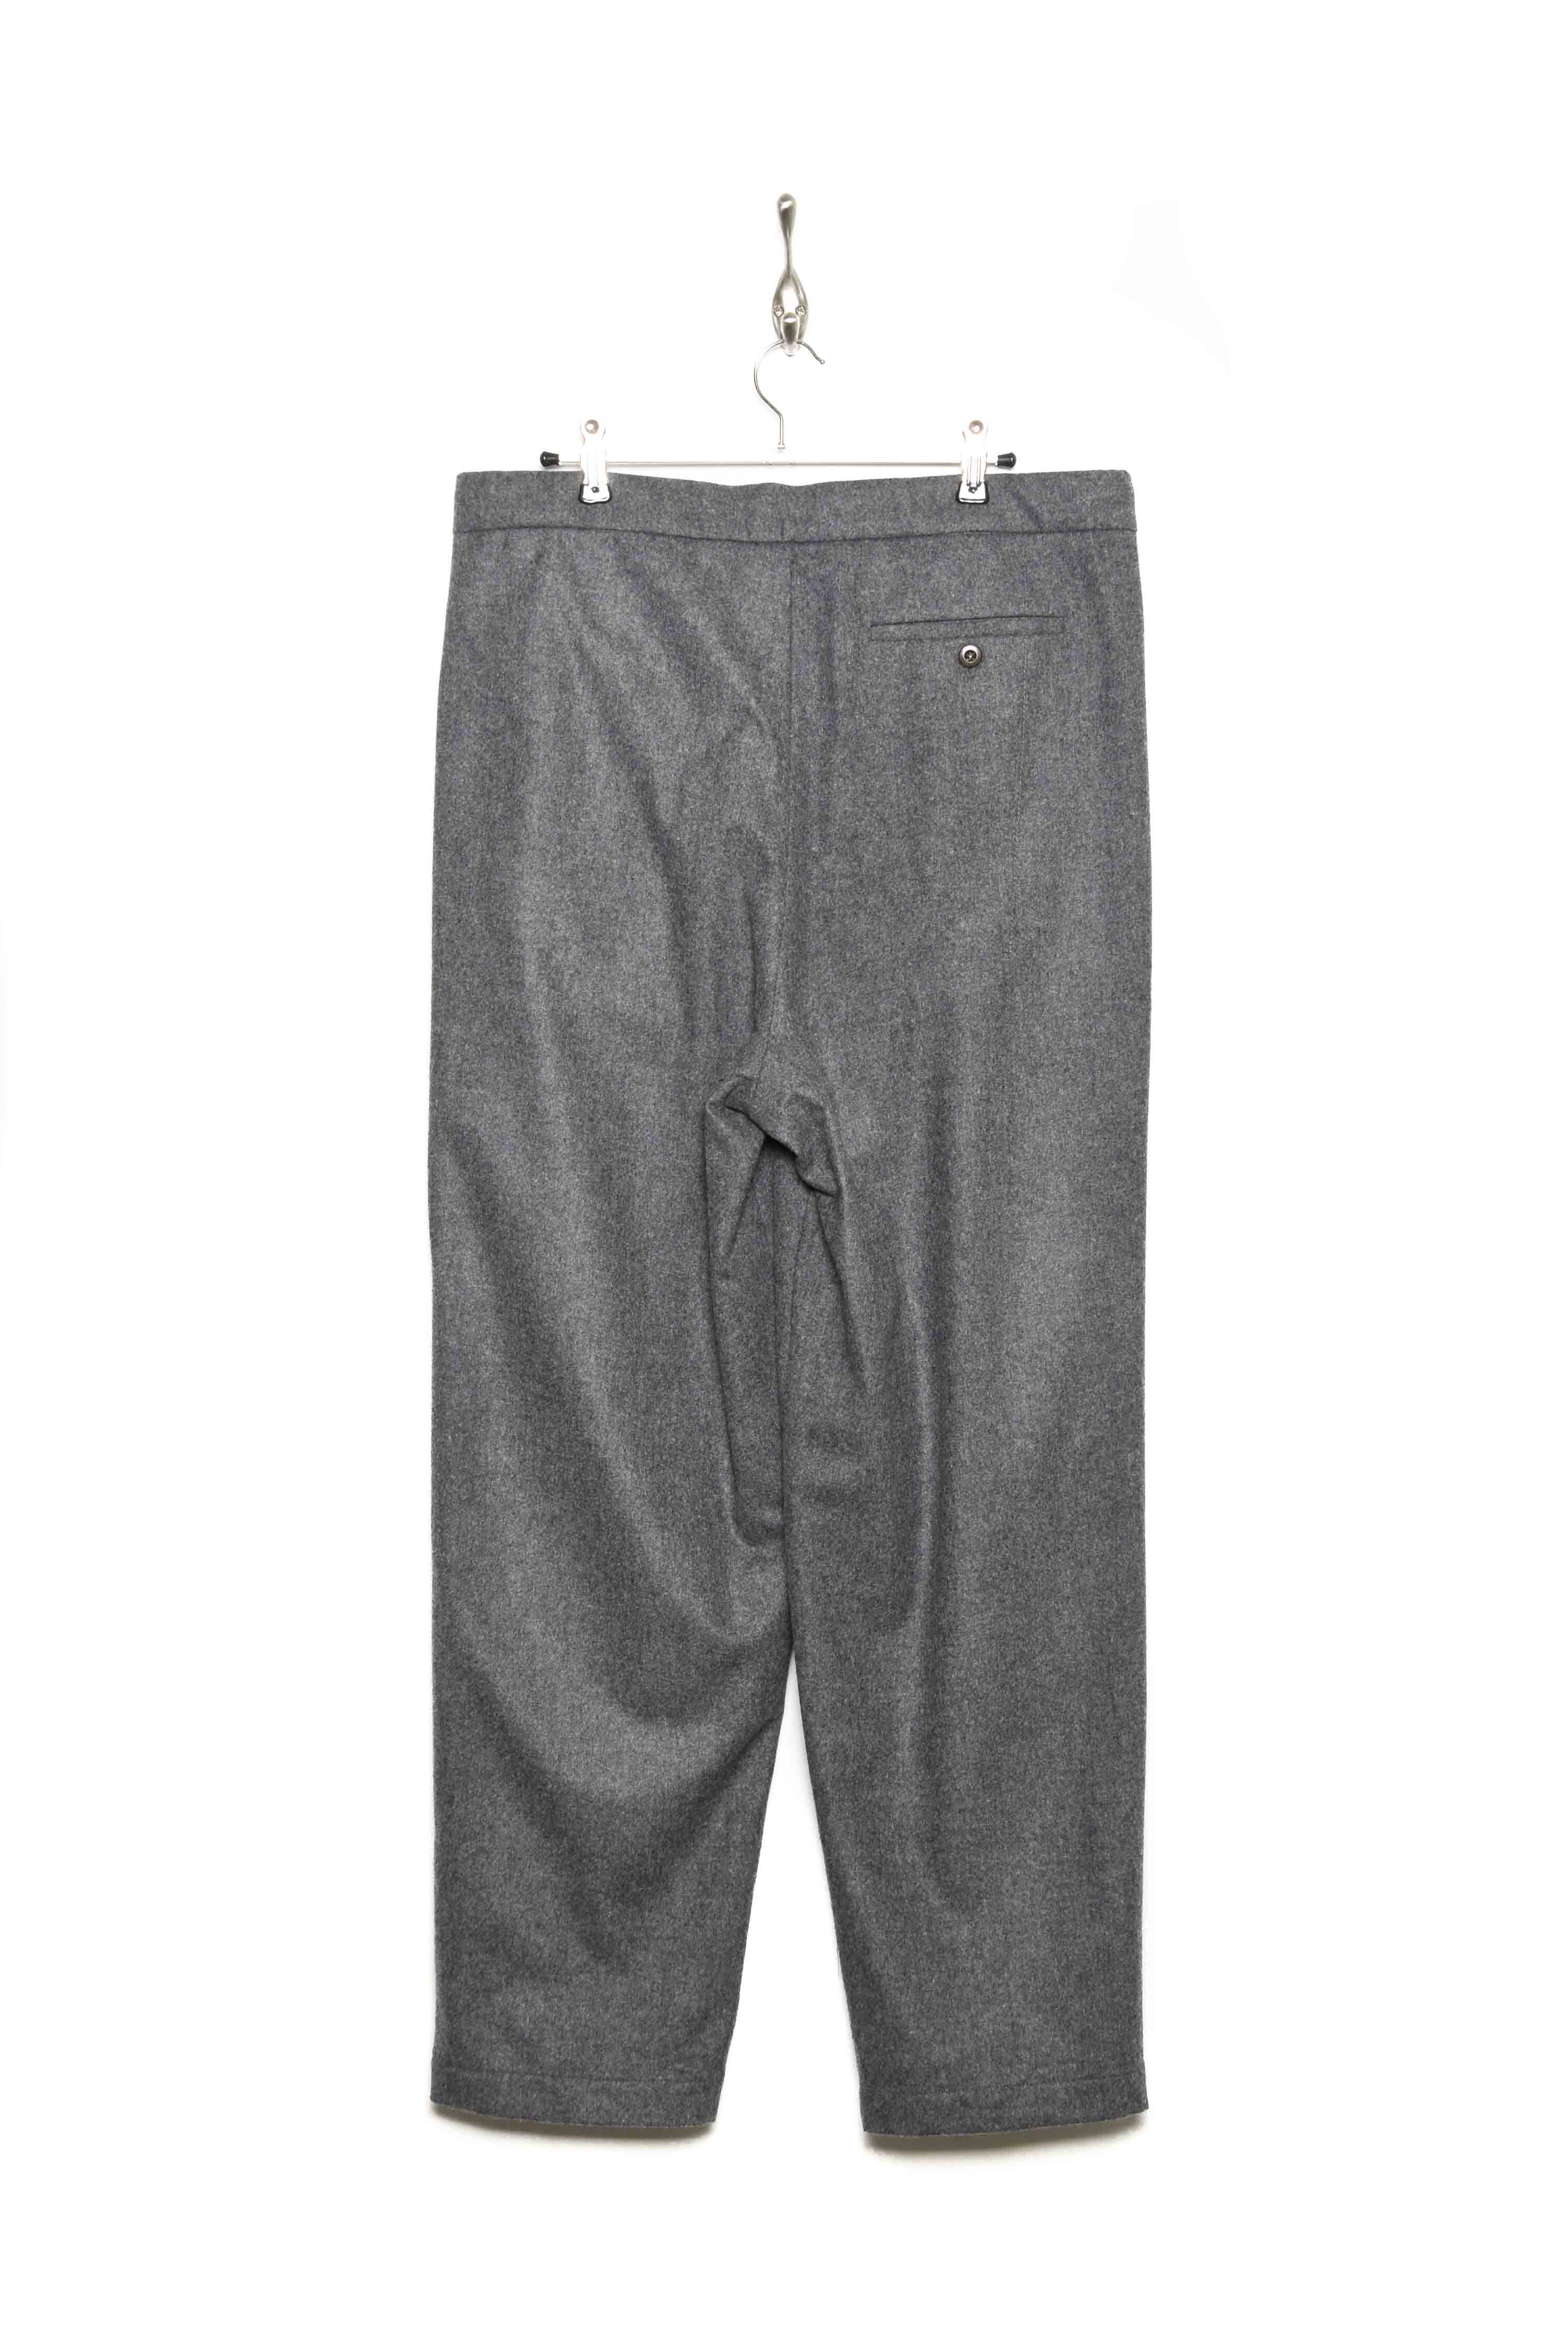 Loden Wool Drawstring Trousers Loden 10 grey 95